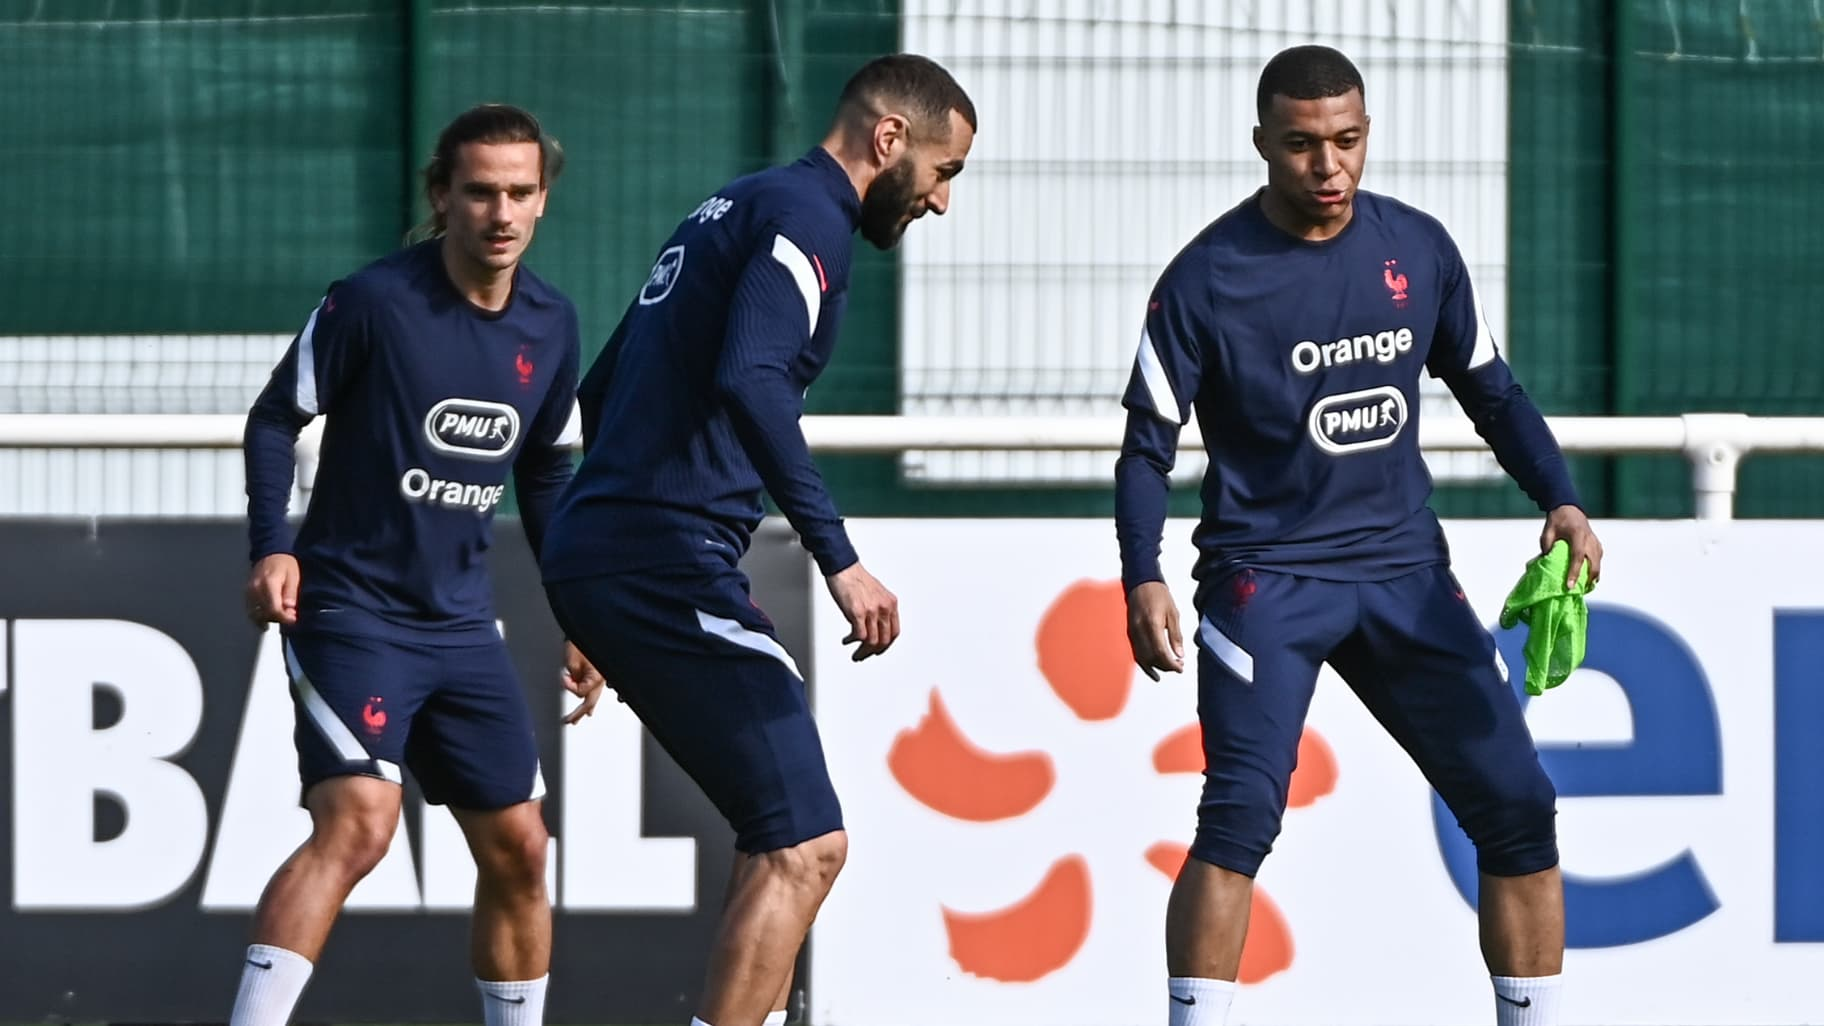 France-Wales, the lines: a 4-4-2 diamond with Mbappé-Benzema, Griezmann in  support - The Indian Paper